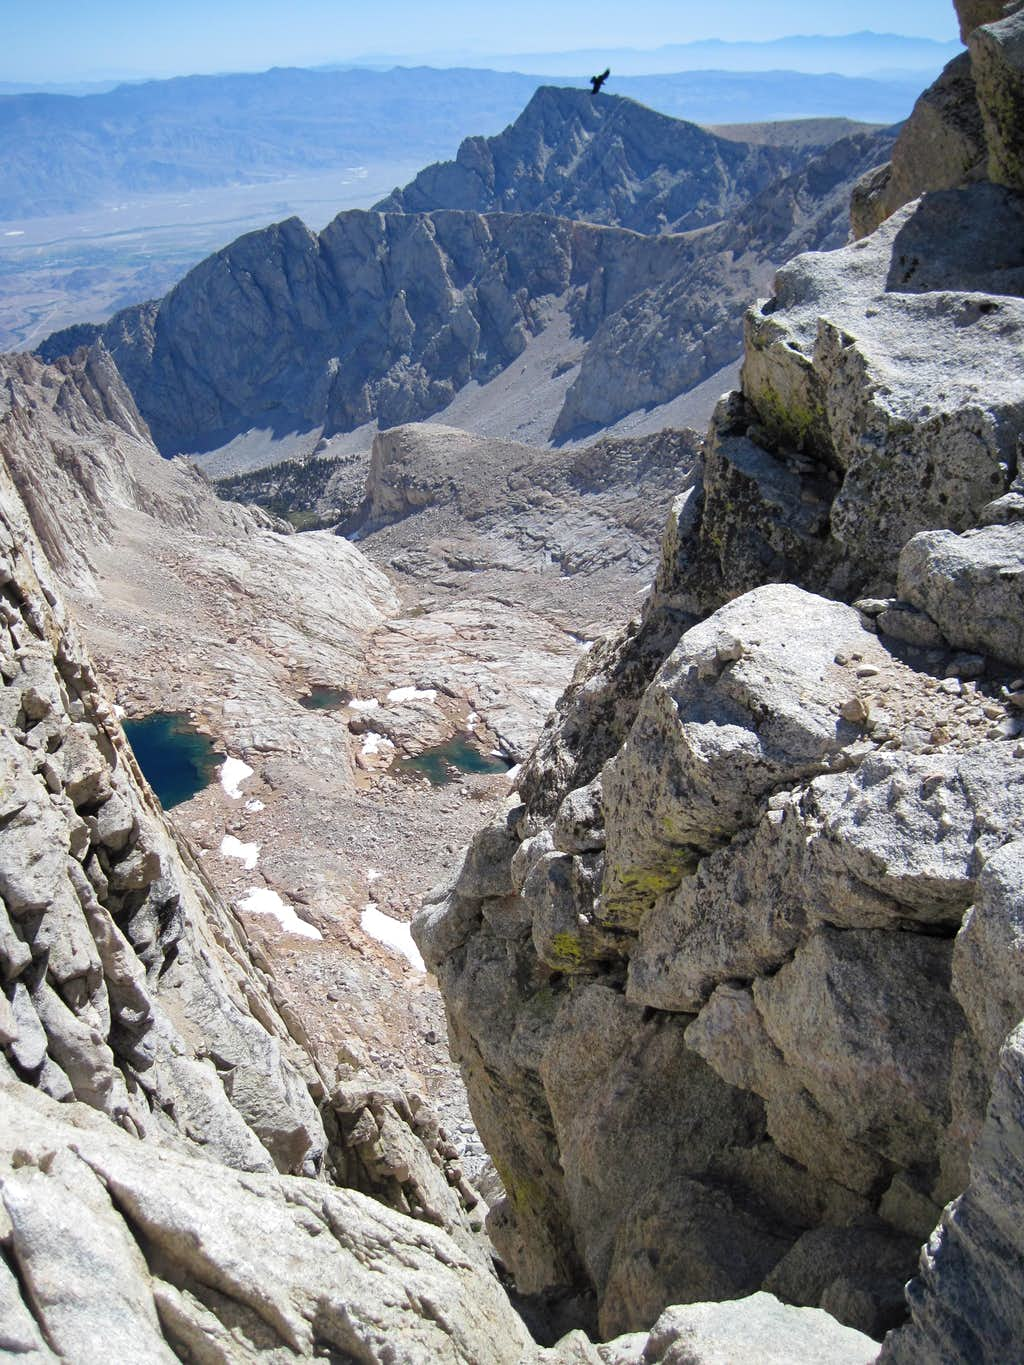 View from Whitney trail down to Owens Valley